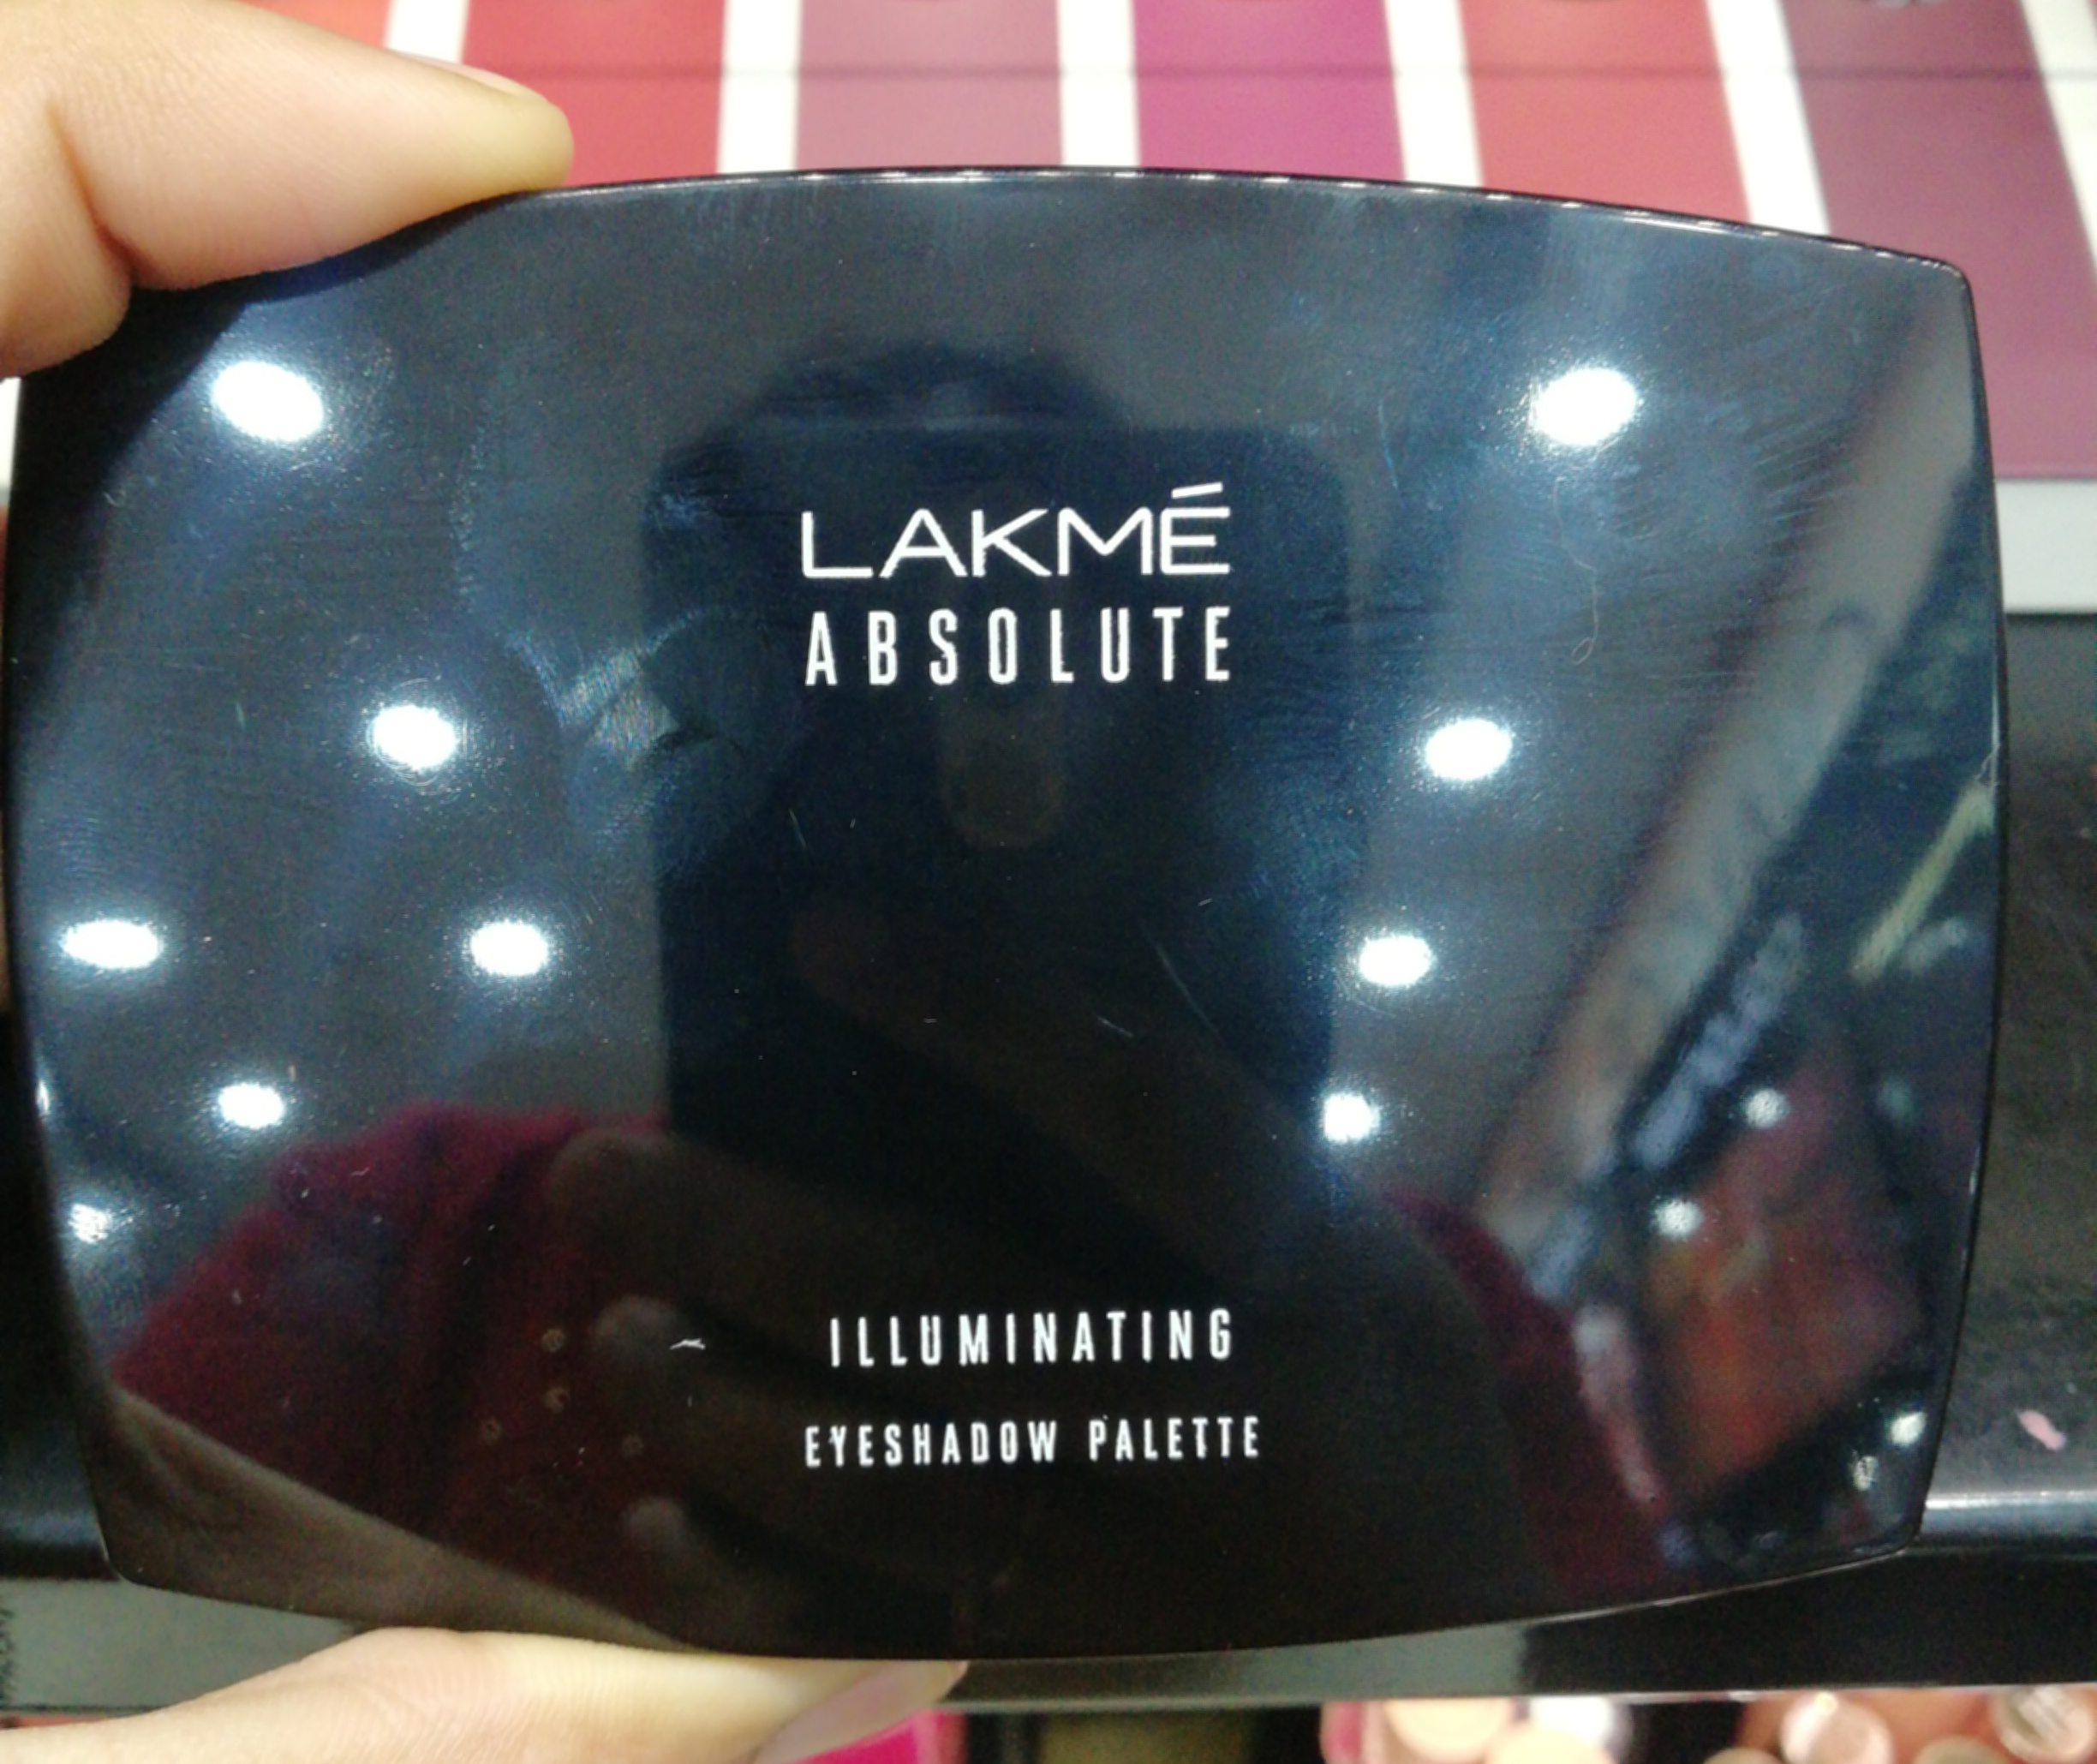 Lakme Absolute Illuminating Eyeshadow Palette-Lovely shades-By ragini_dhiman-1